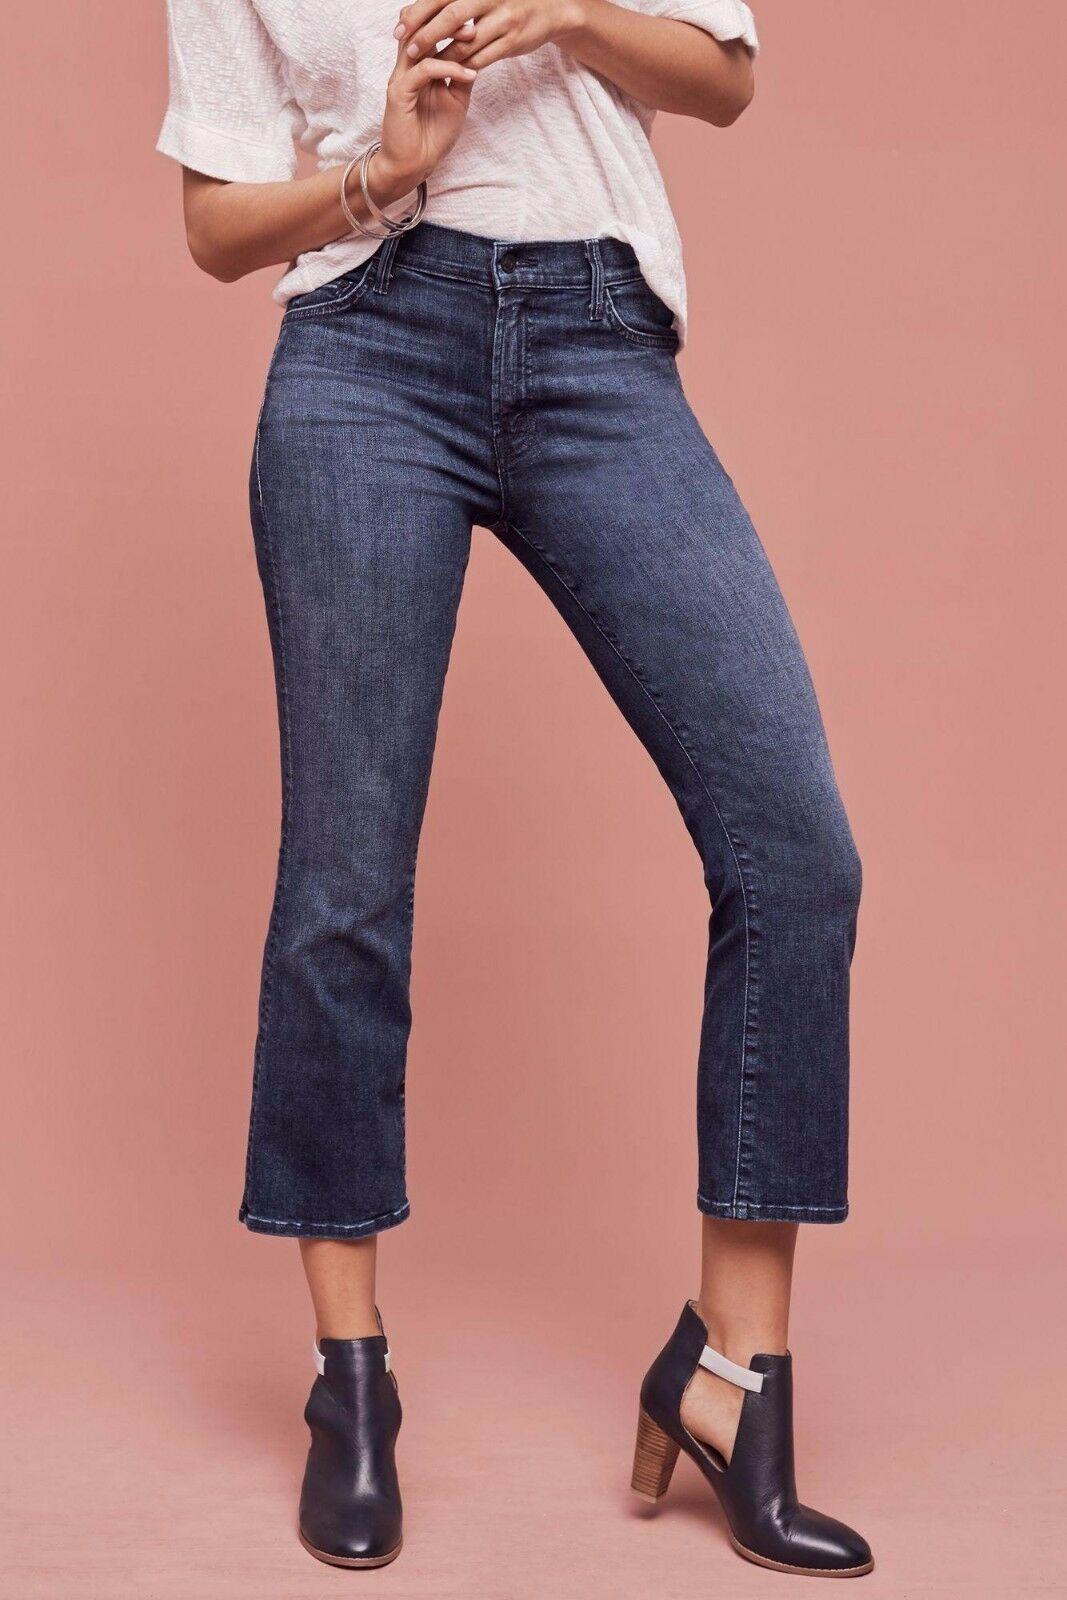 NWT MOTHER THE INSIDER HIGH-RISE TWILIGHT MAGIC CROP JEANS 29